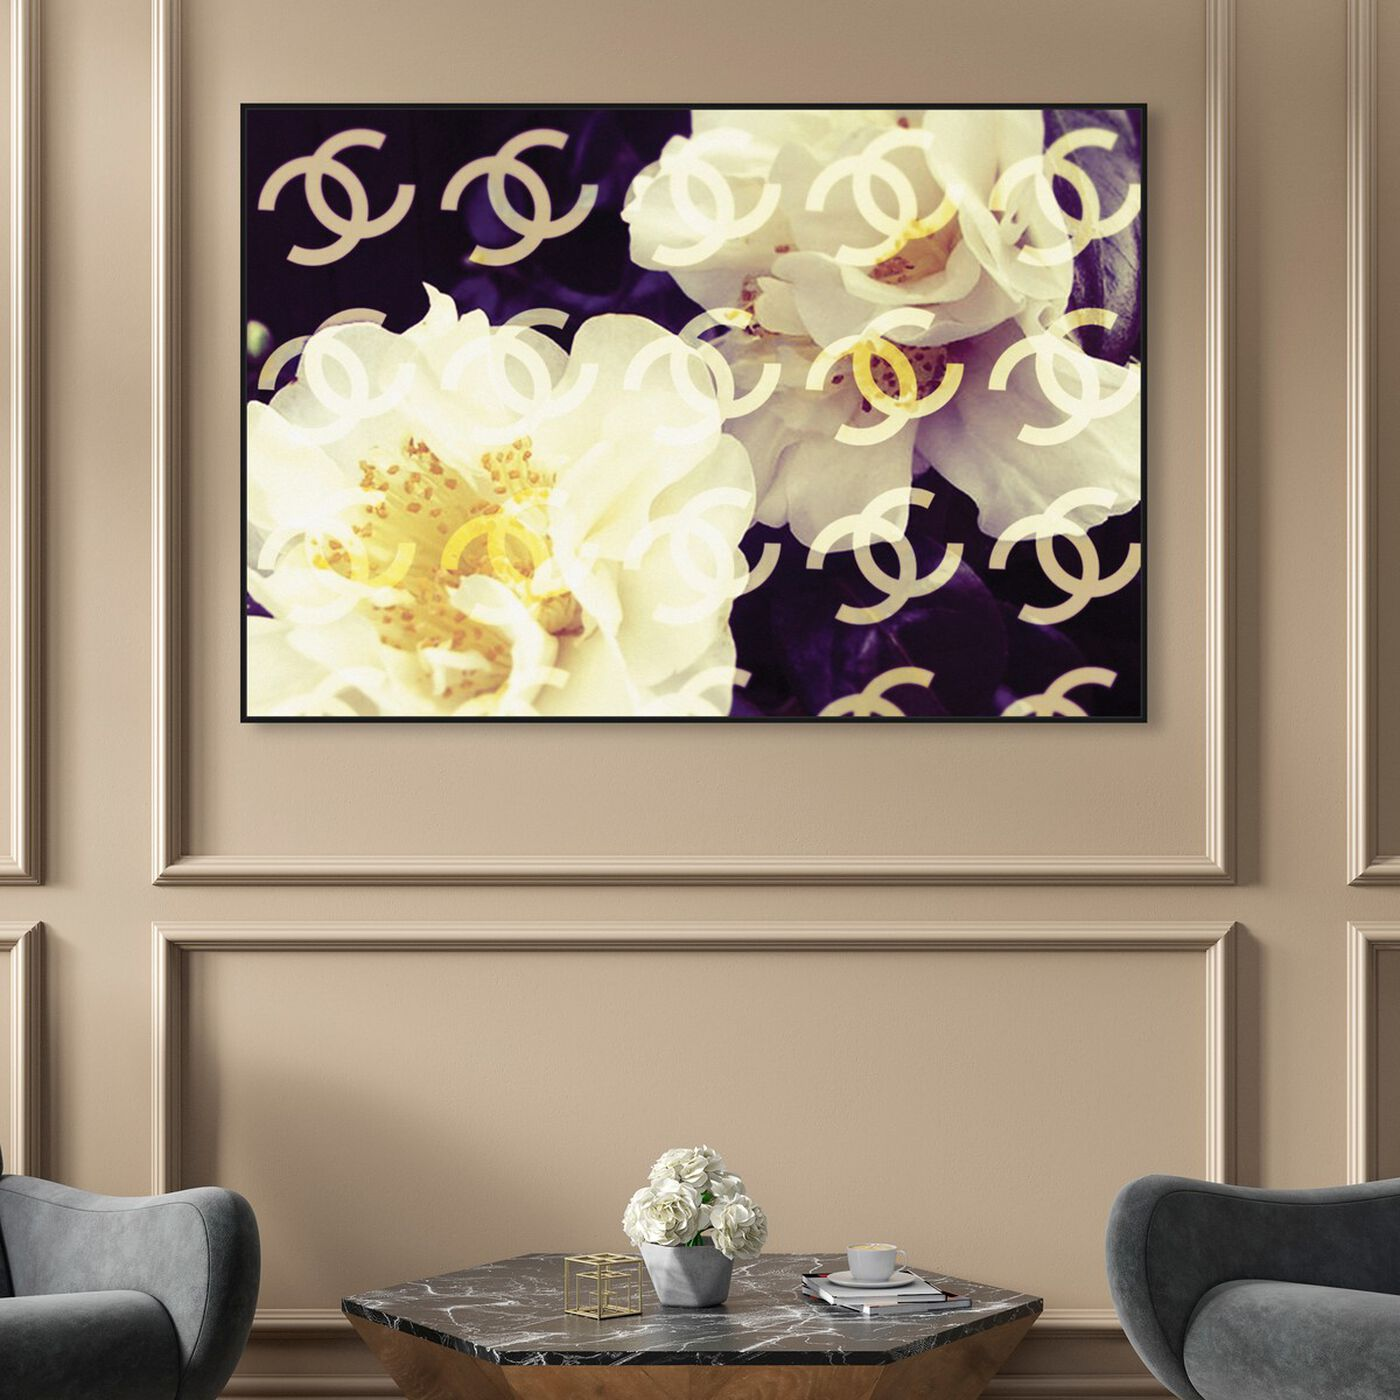 Hanging view of Coco's Camellia Vanilla featuring floral and botanical and florals art.